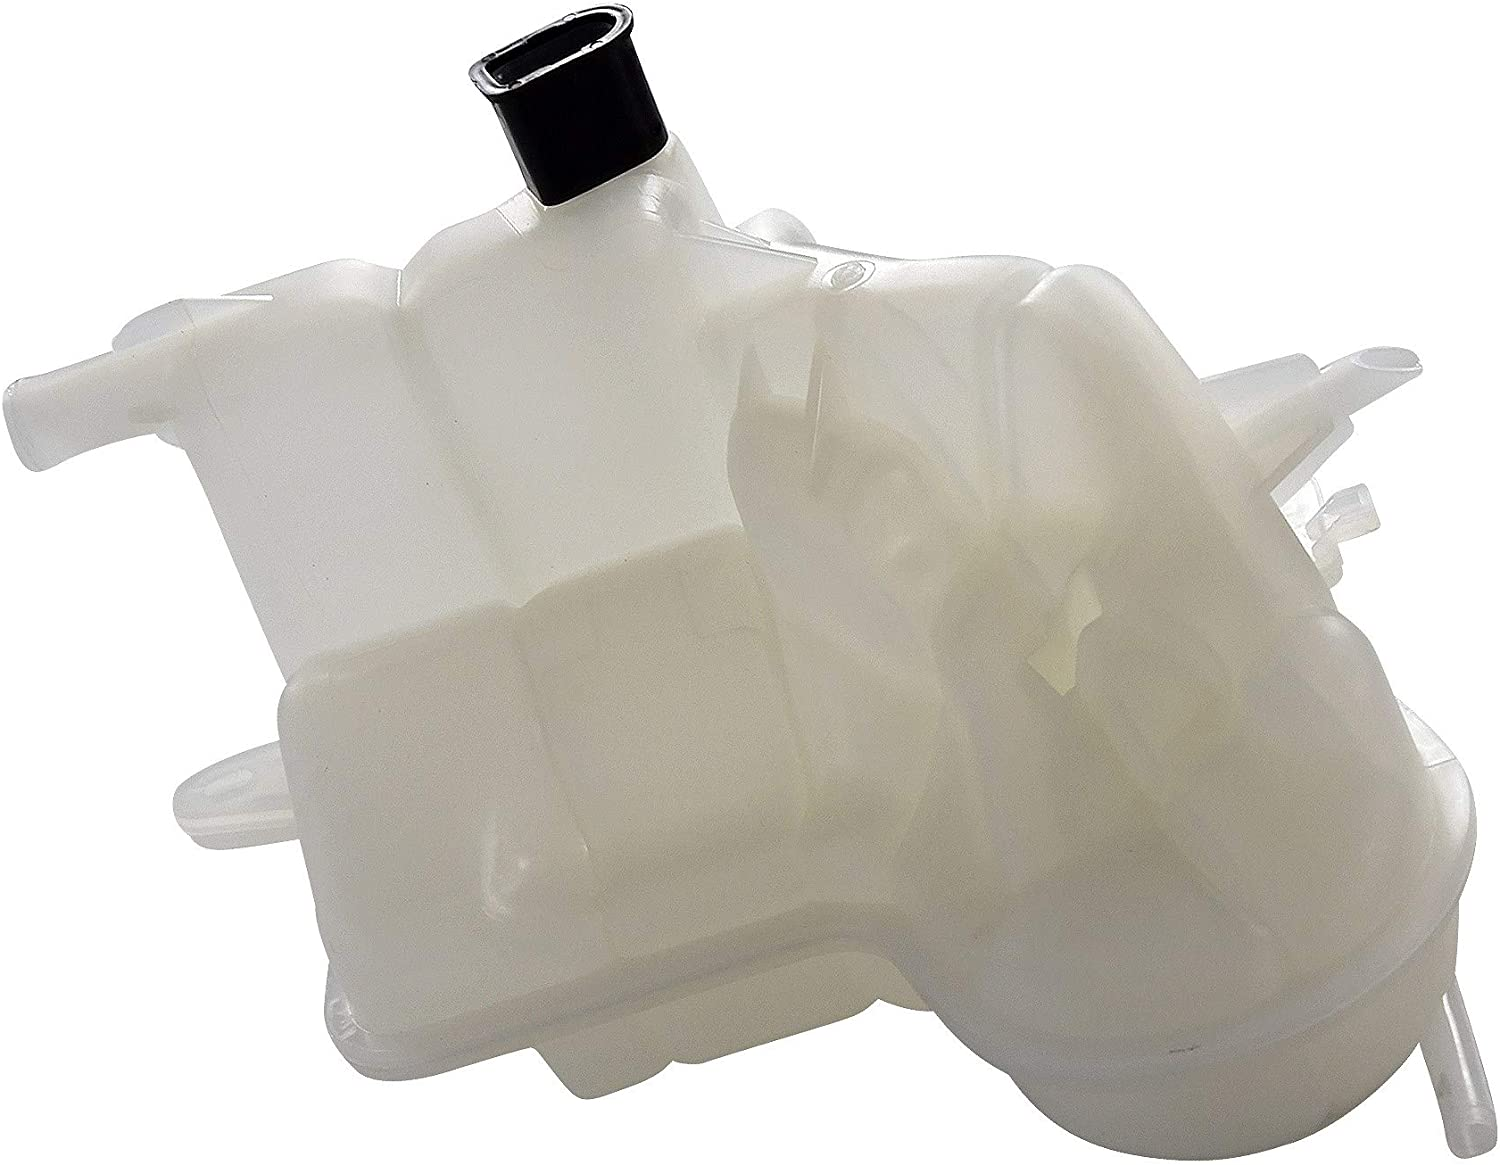 Coolant Recovery Kits JP Coolant Expansion Tank Fits AUDI A6 C6 4F ...